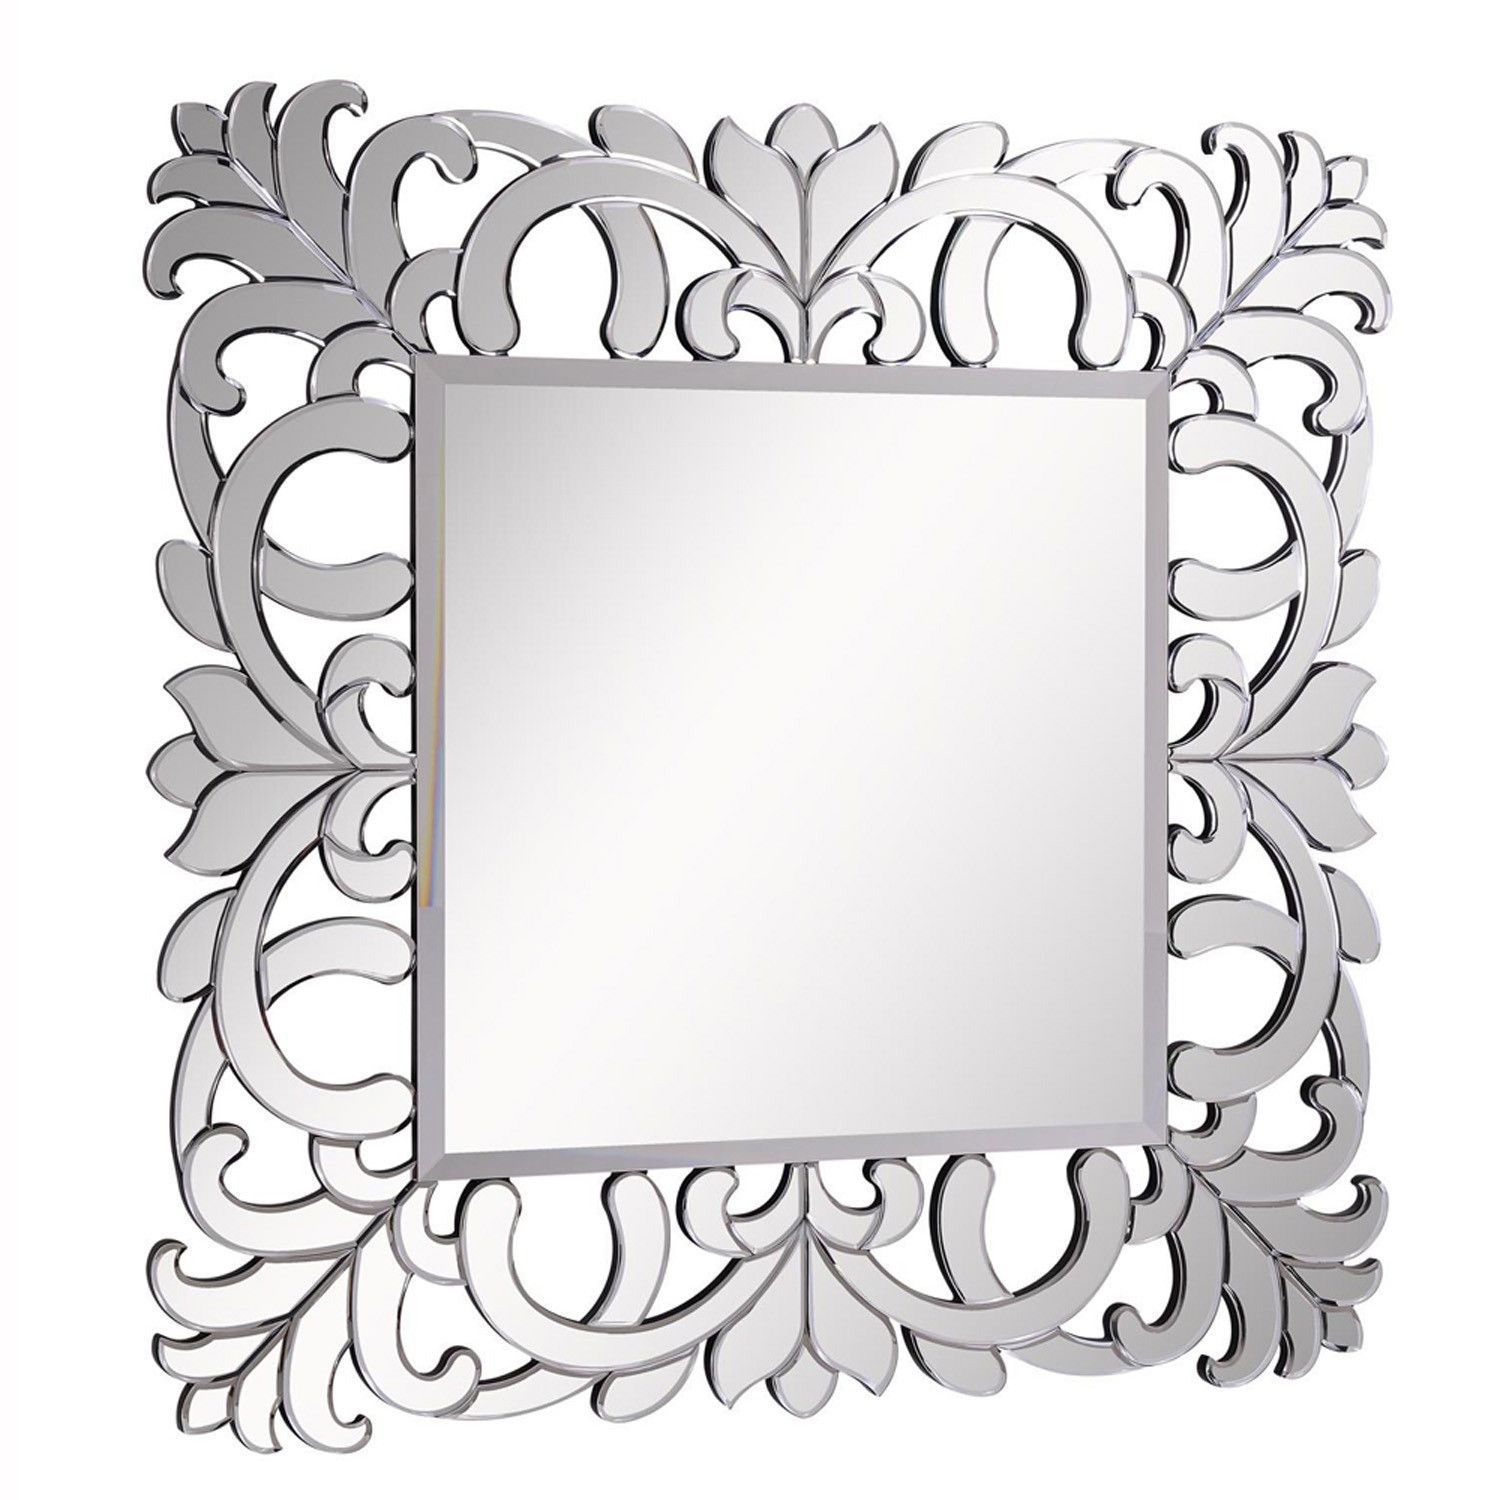 "Elegant Lighting - Mirror 46"" x 46"" x 3/4"", Clear"